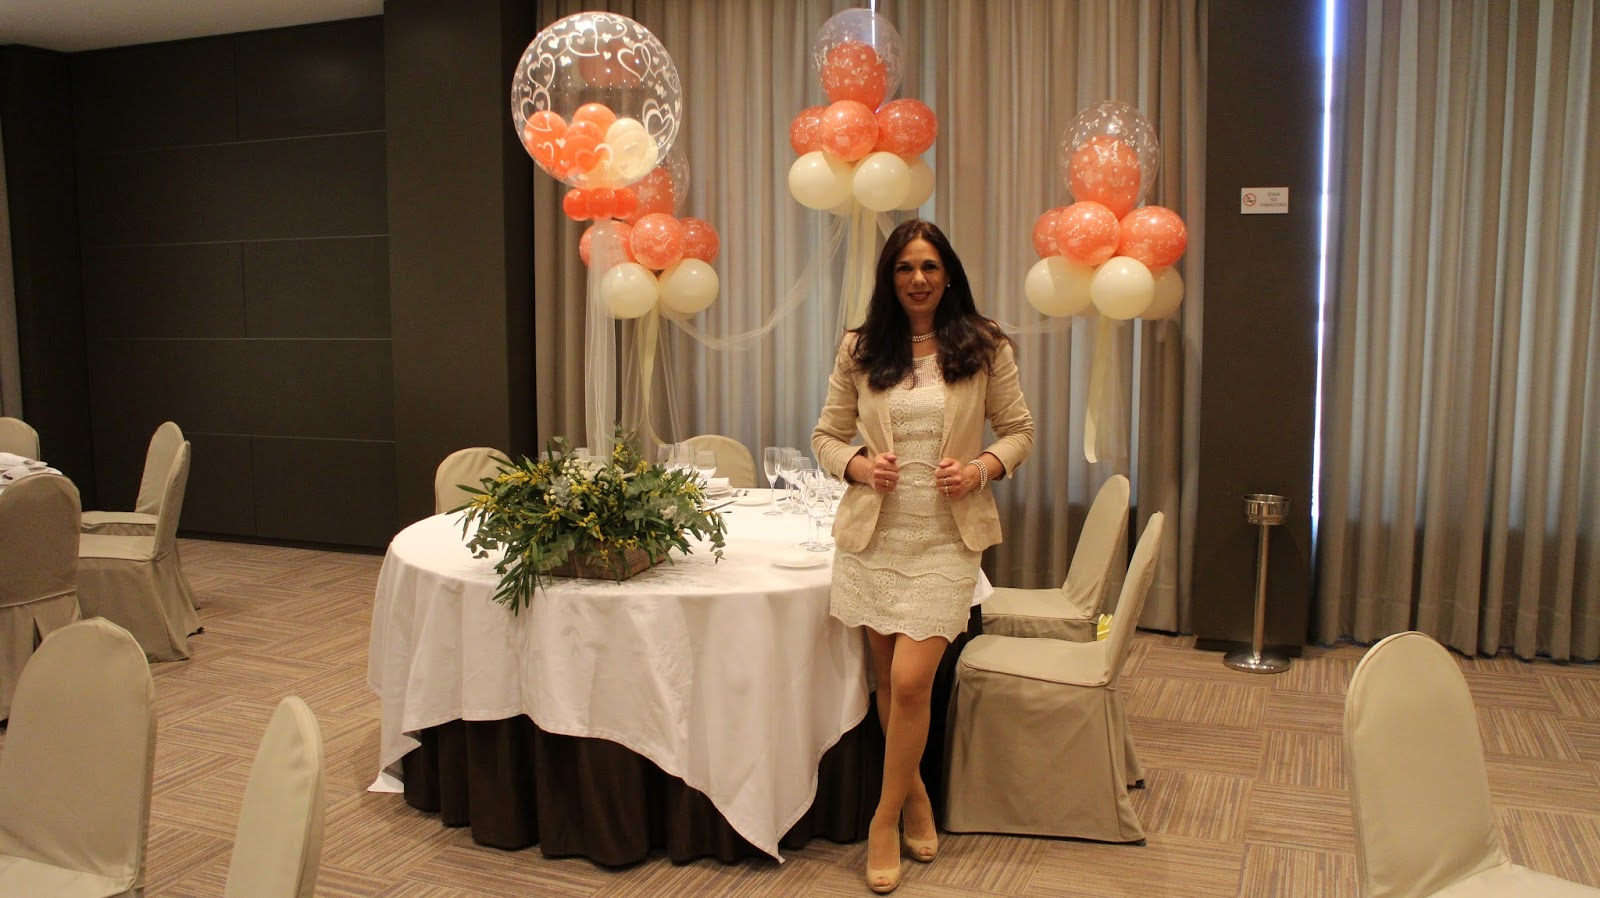 Superglobos Ideas Para Decorar